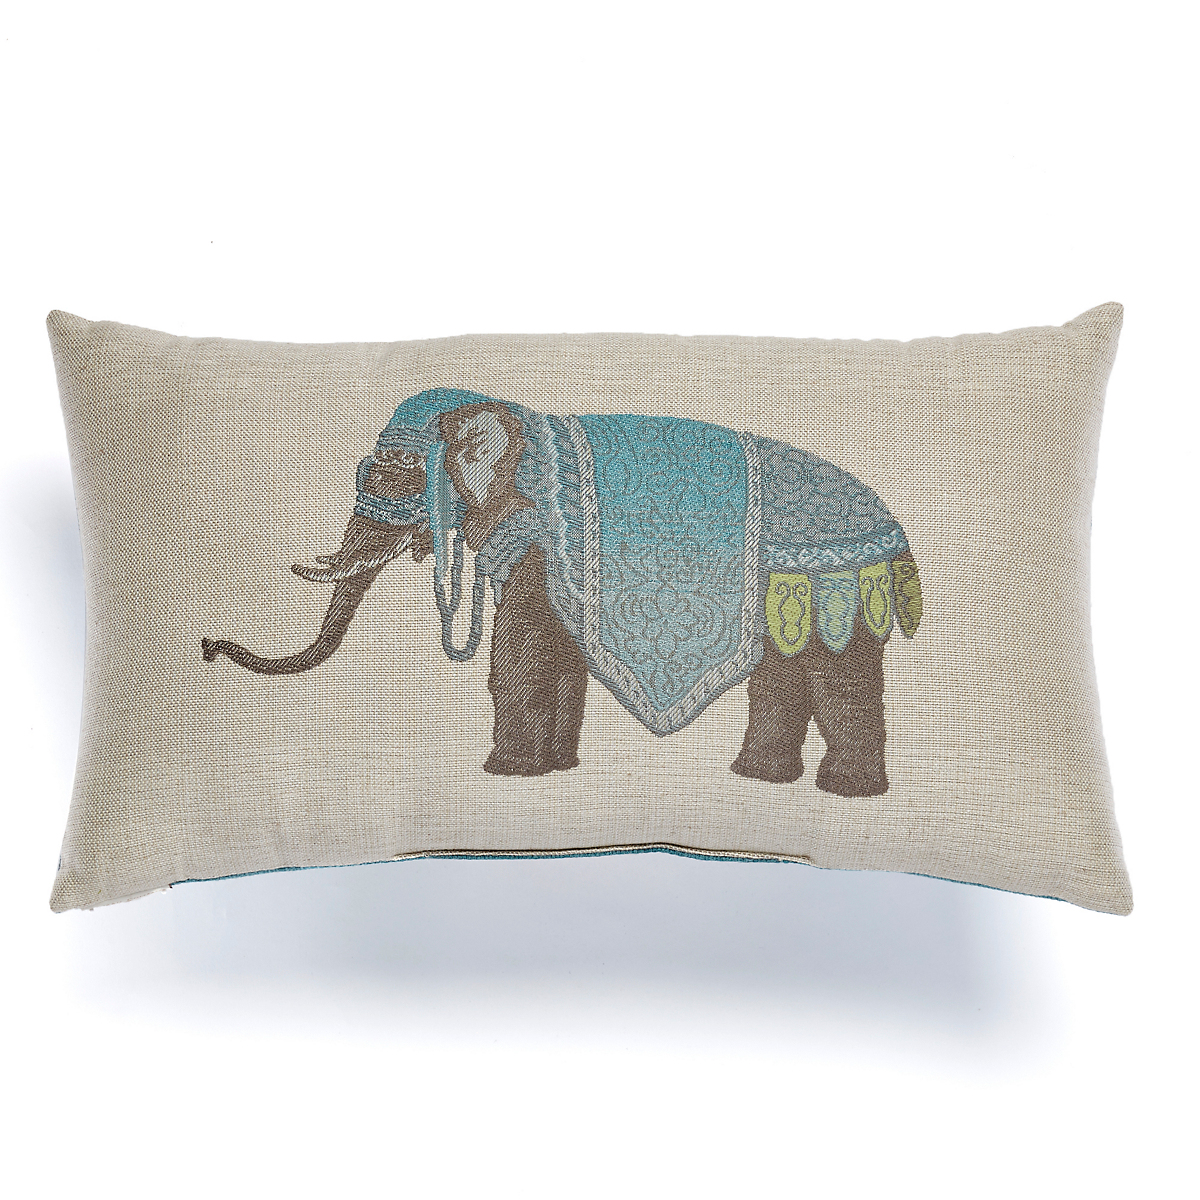 Azure Noble Elephant Pillows